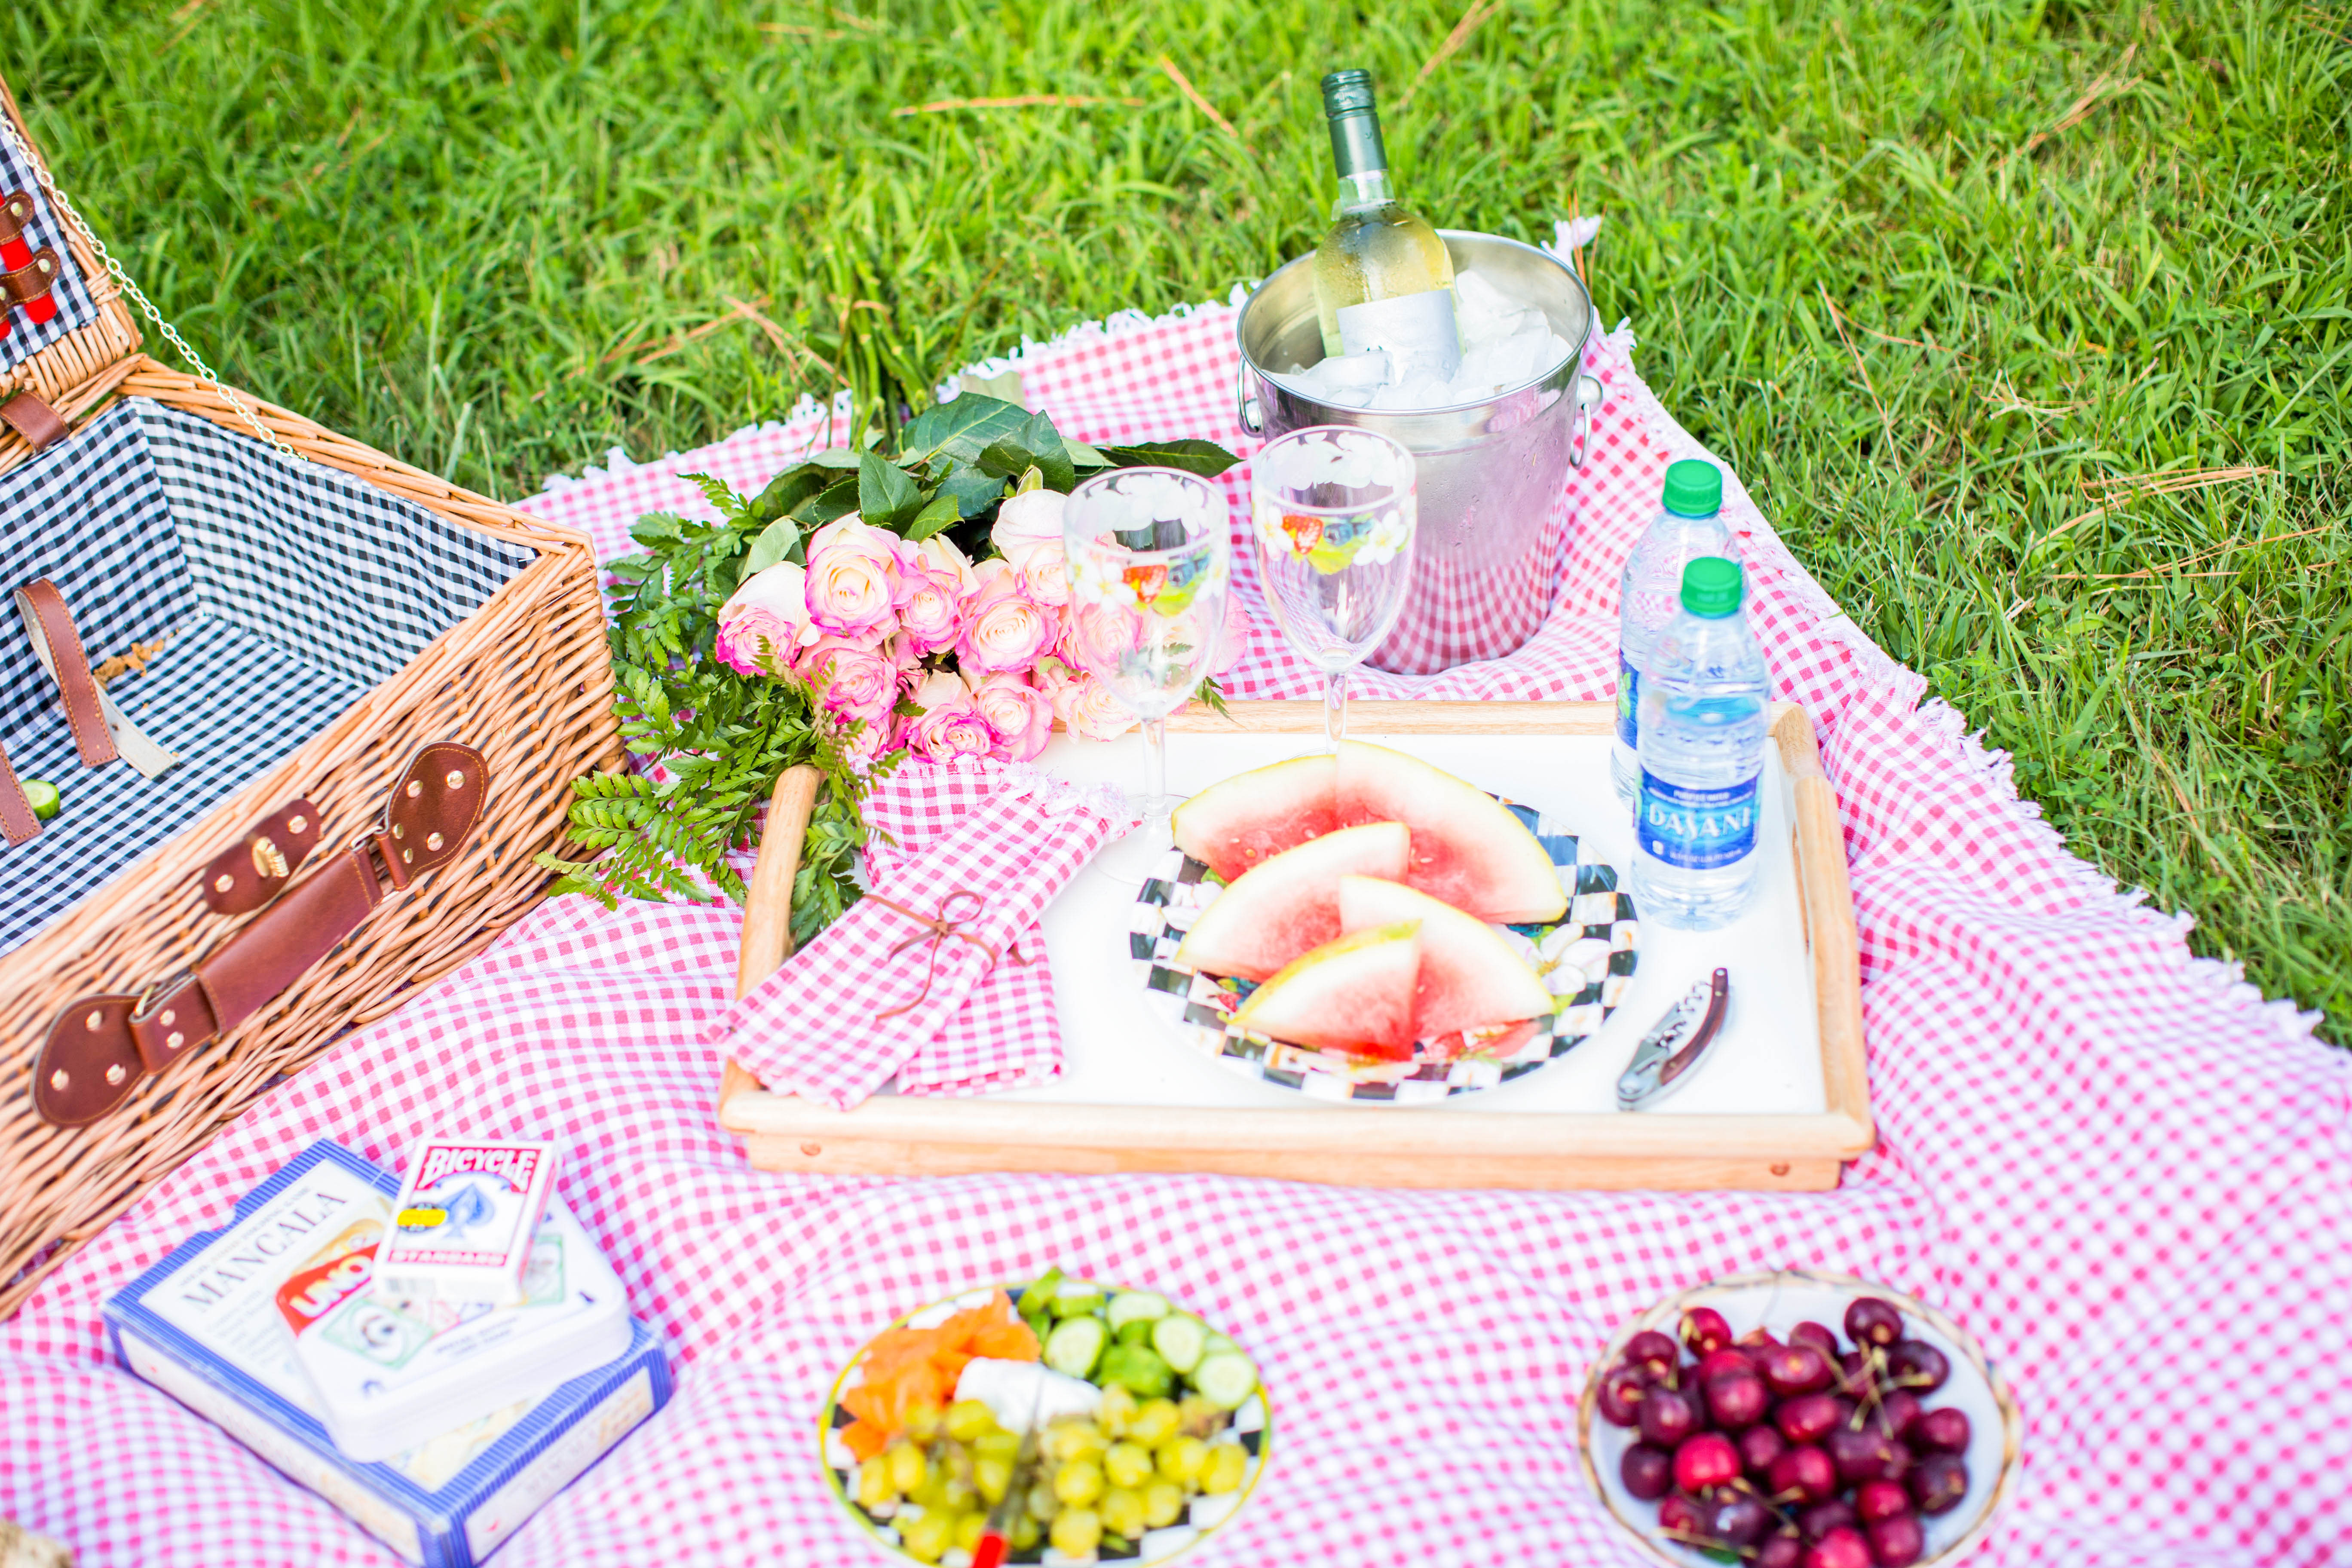 How to Have the Perfect Summer Picnic by NC blogger Coffee Beans and Bobby Pins